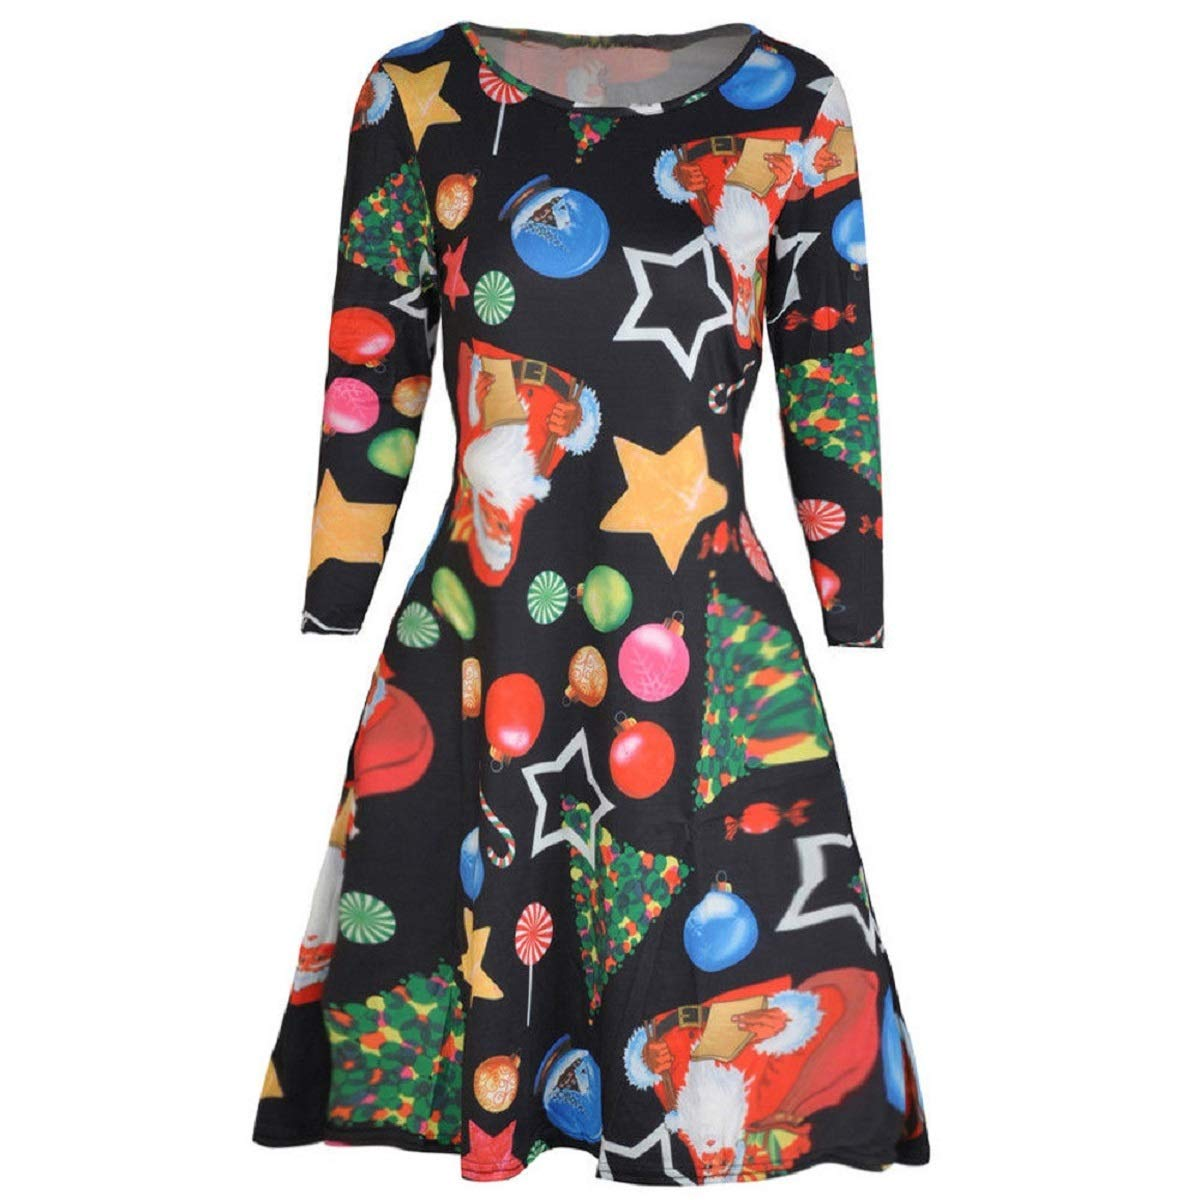 Auwer Womens Christmas Dress Long Sleeve Casual Aline Party Dress